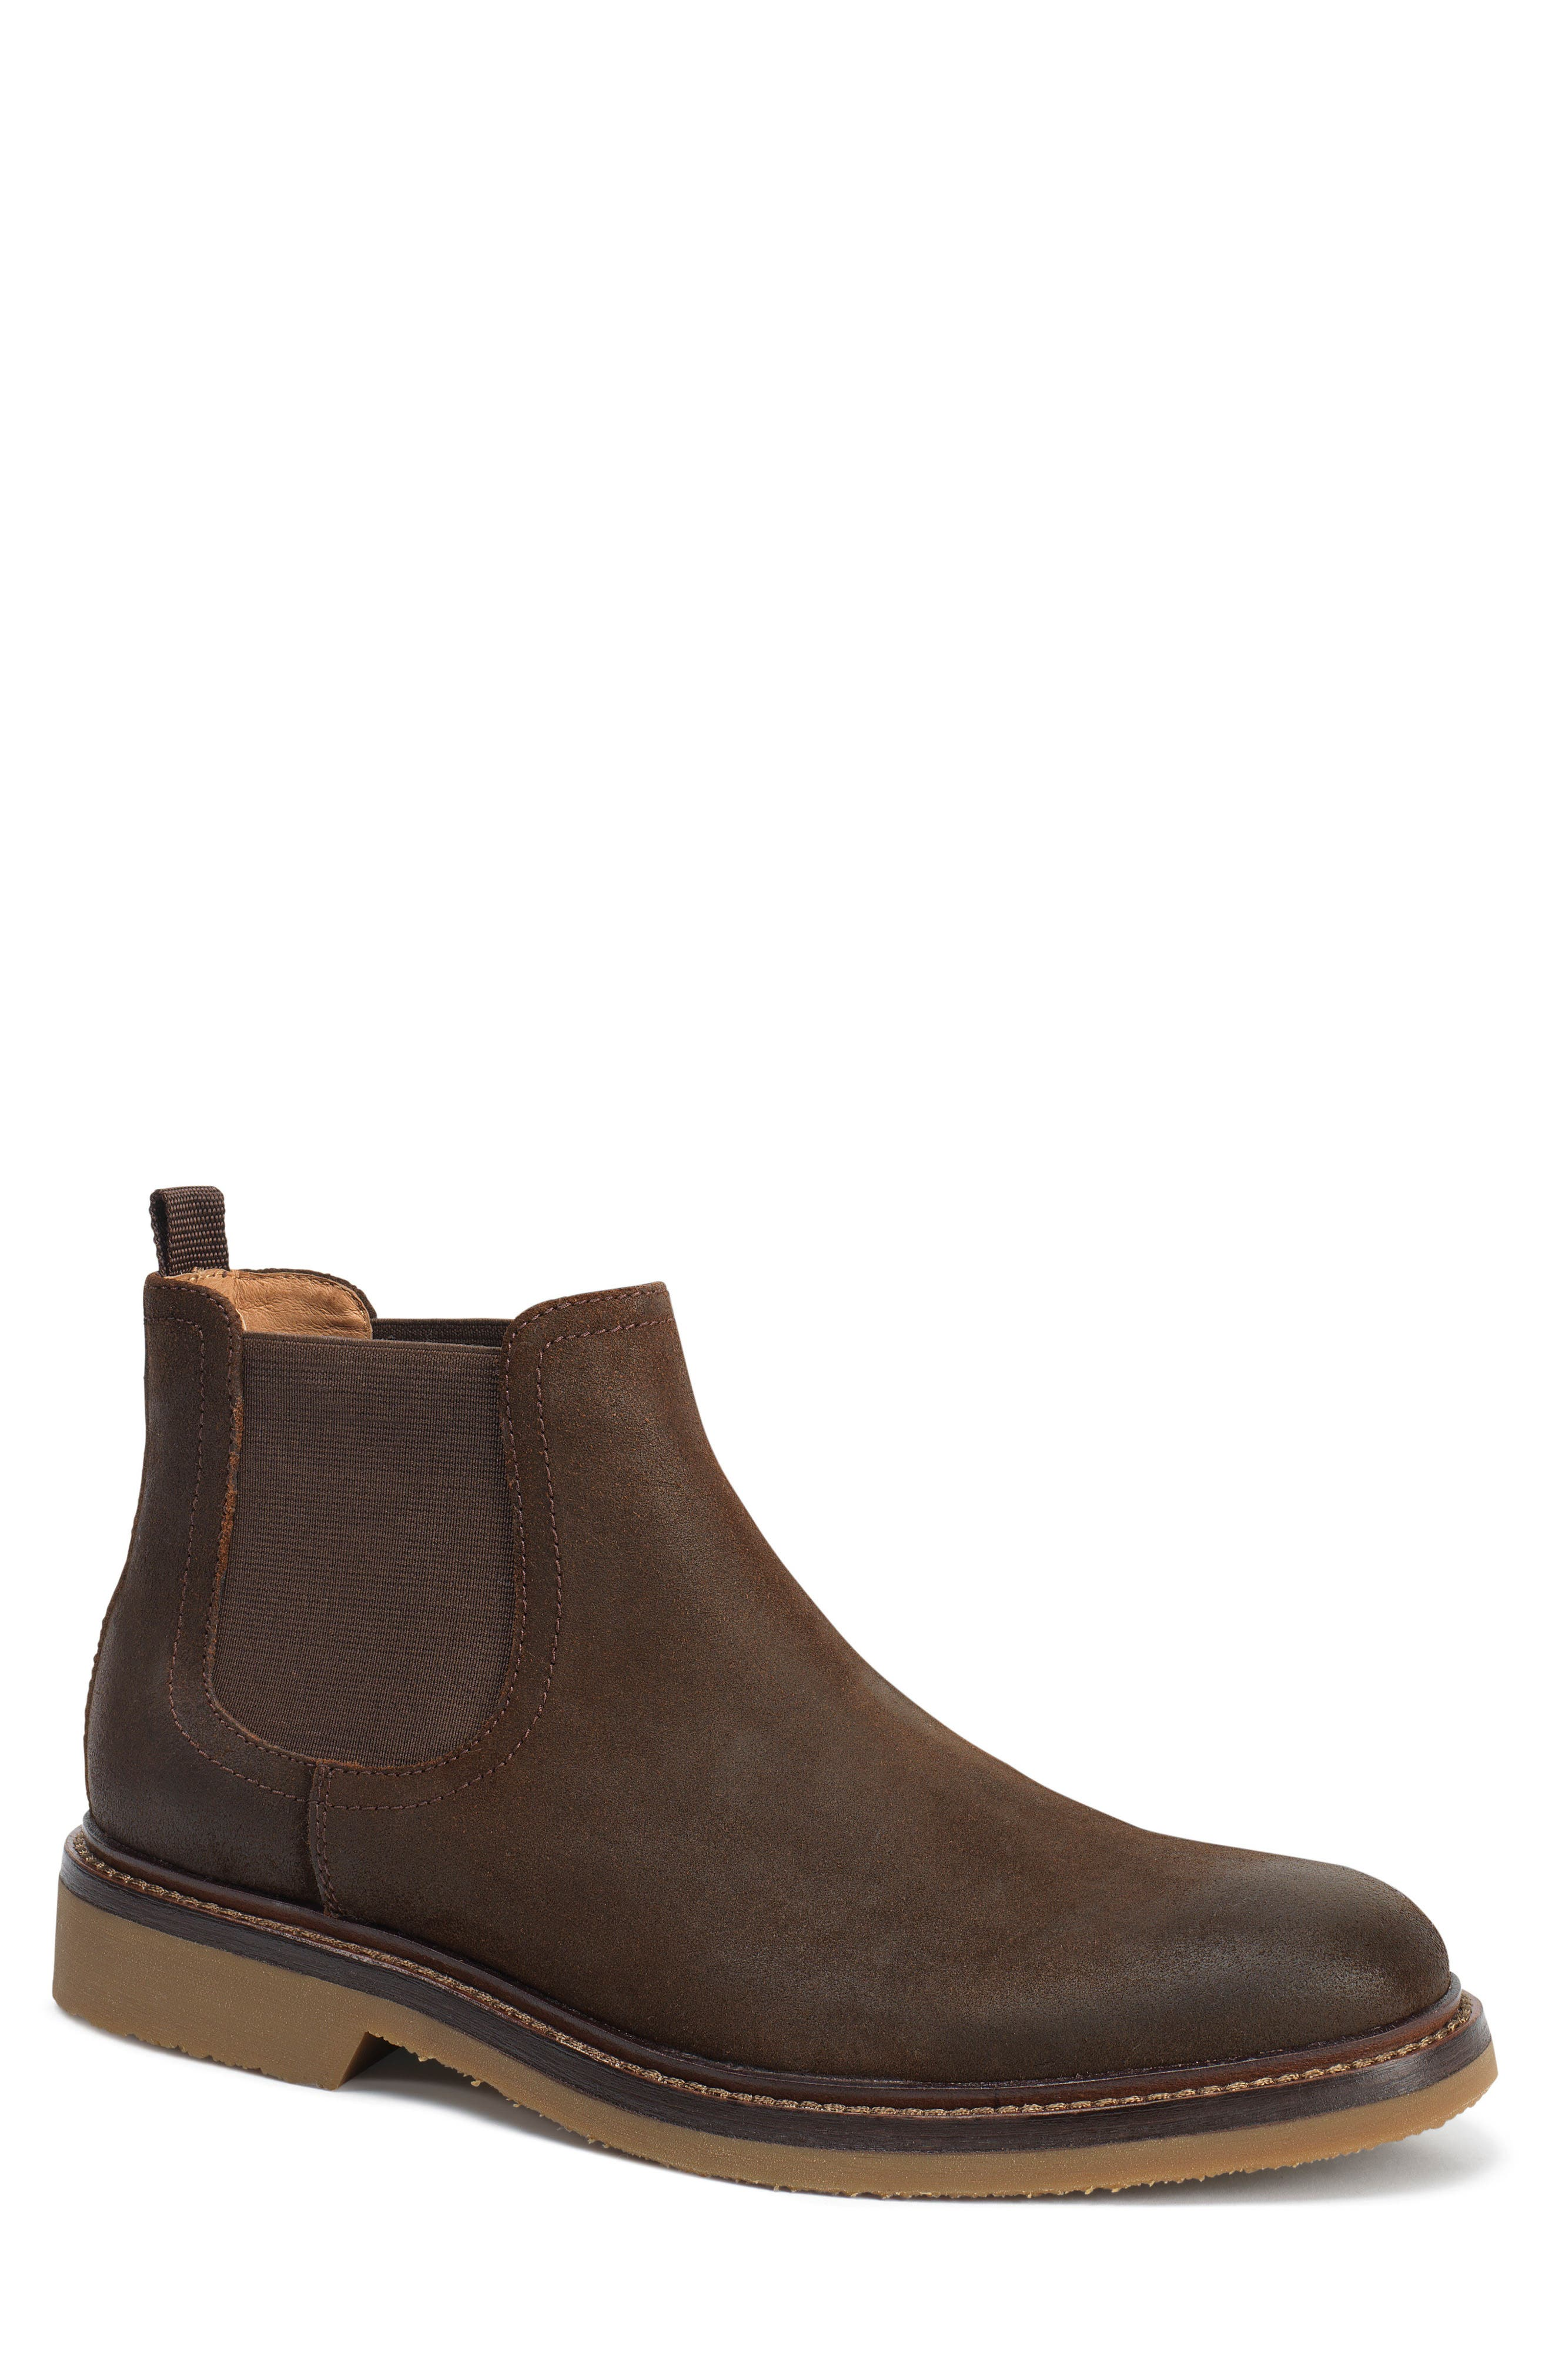 Carter Chelsea Boot,                             Main thumbnail 1, color,                             Snuff Waxed Suede